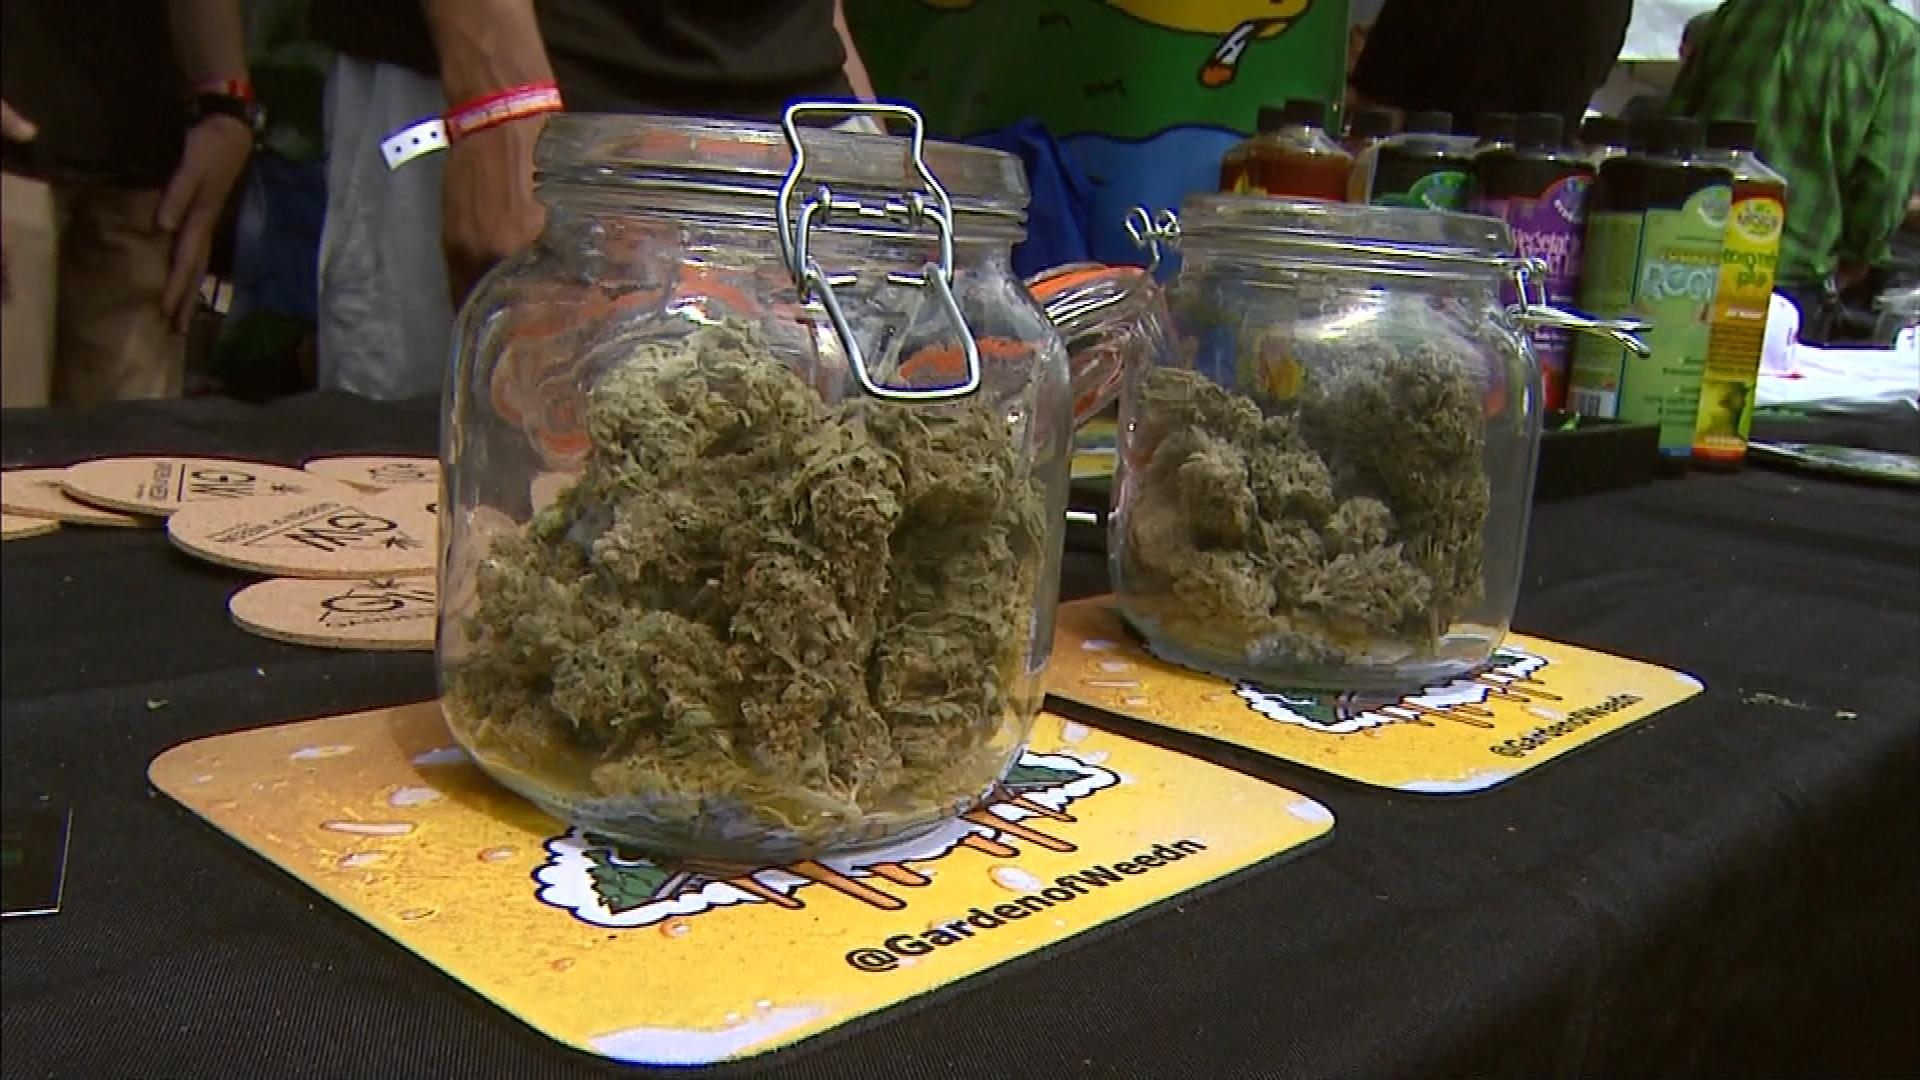 Pot at the Cannabis Cup (credit: CBS)